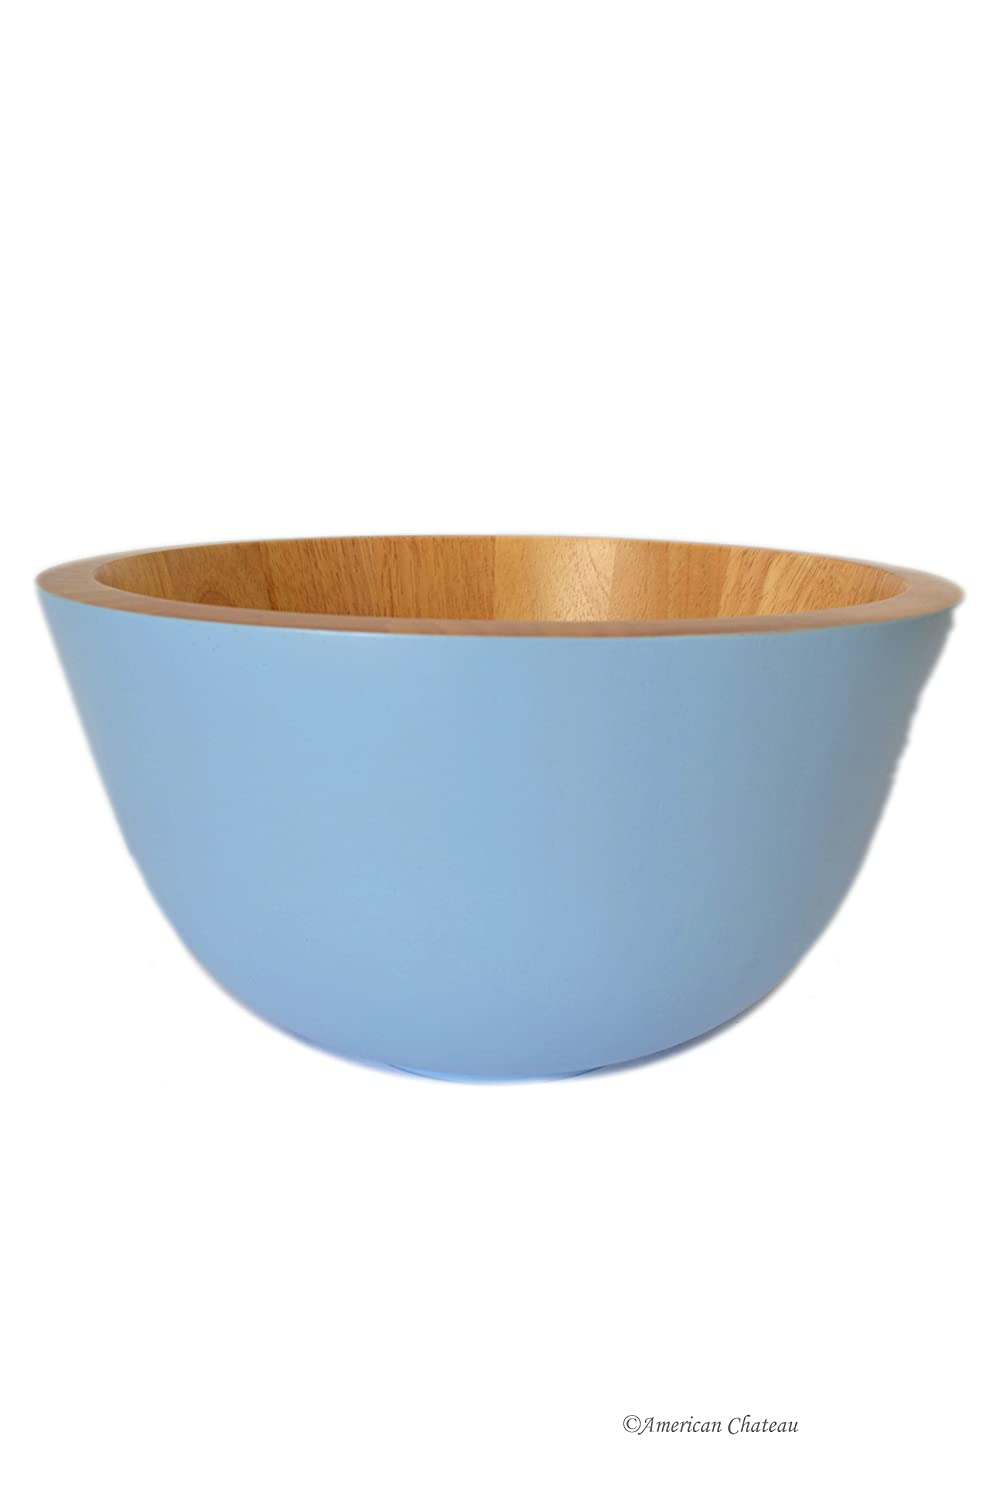 Hand Made Baby-Blue Round Large Wood Salad Serving Food Fruit Bowl Dish American Chateau